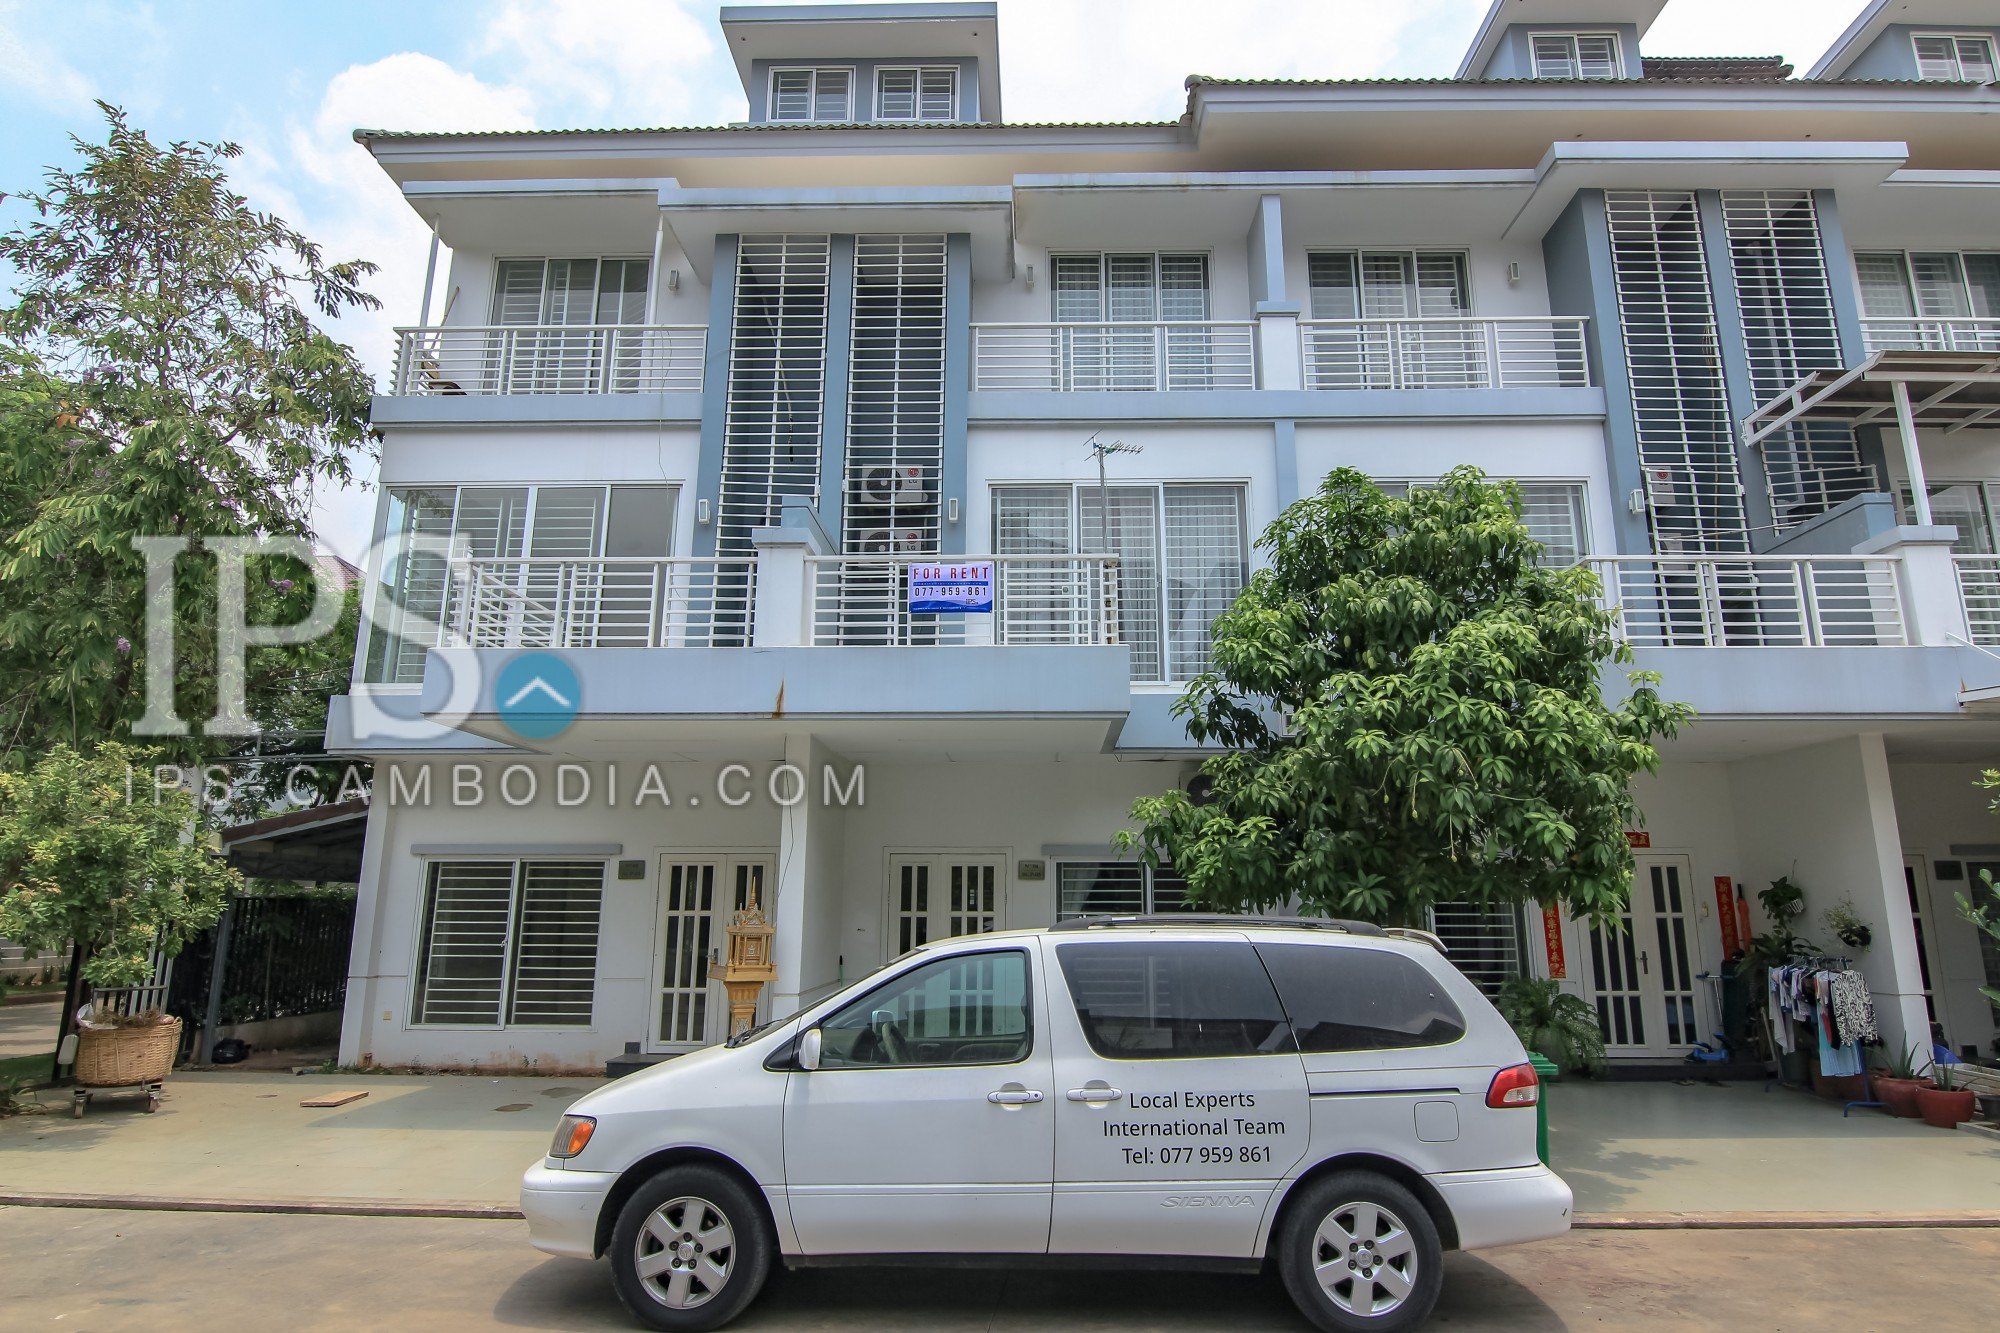 4 Bedroom Townhouse For Rent - Phnom Penh Thmey